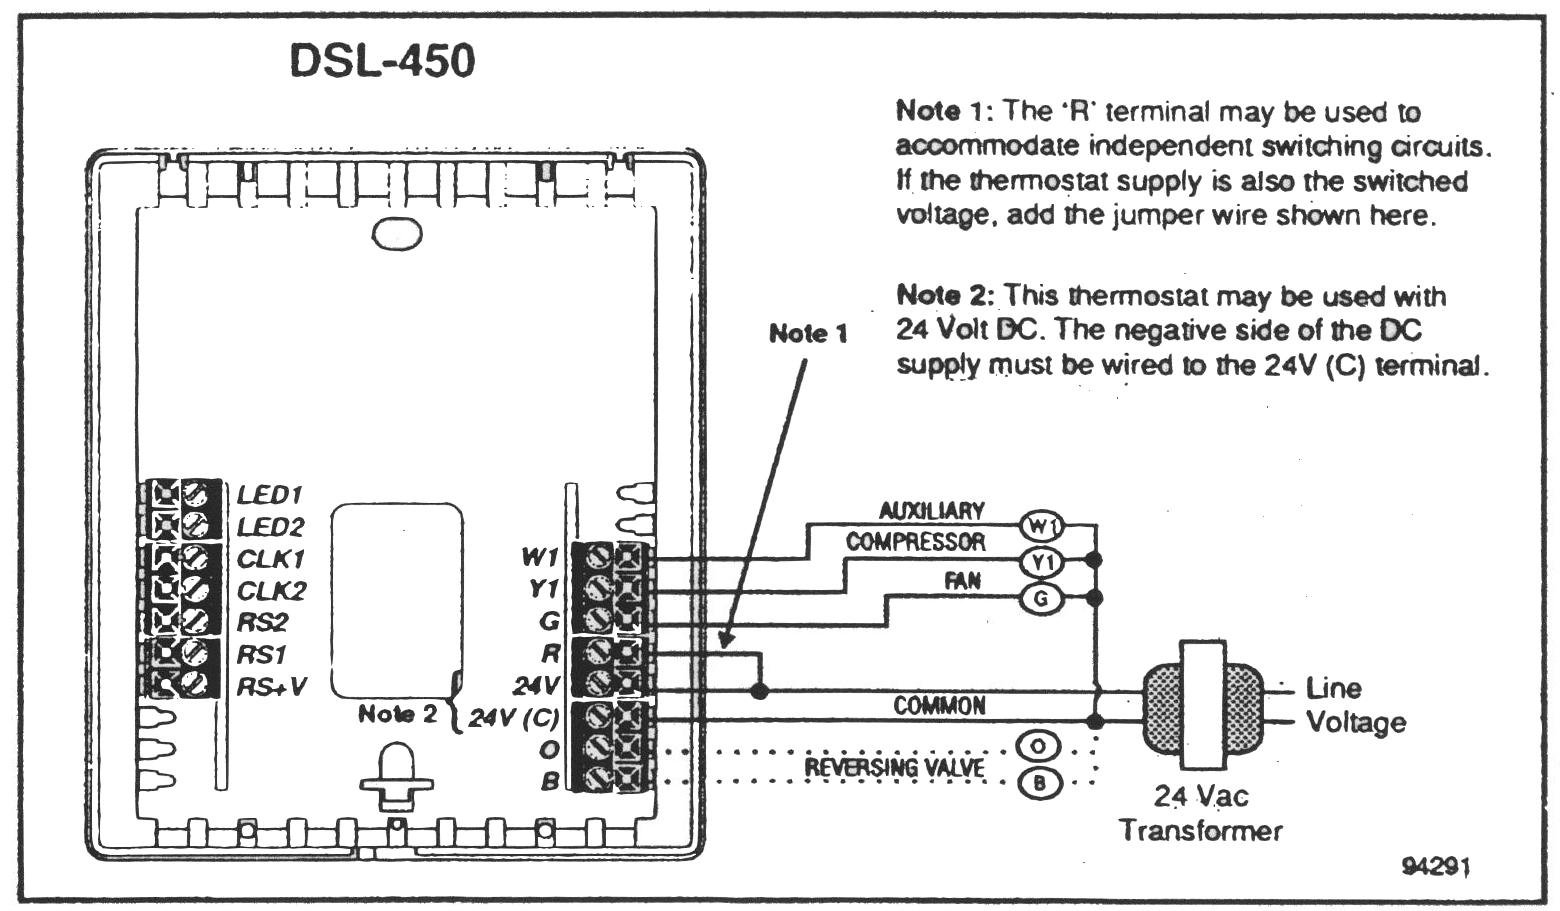 Lennox dsl 450 lx thermostat manual for Th 450 termostato